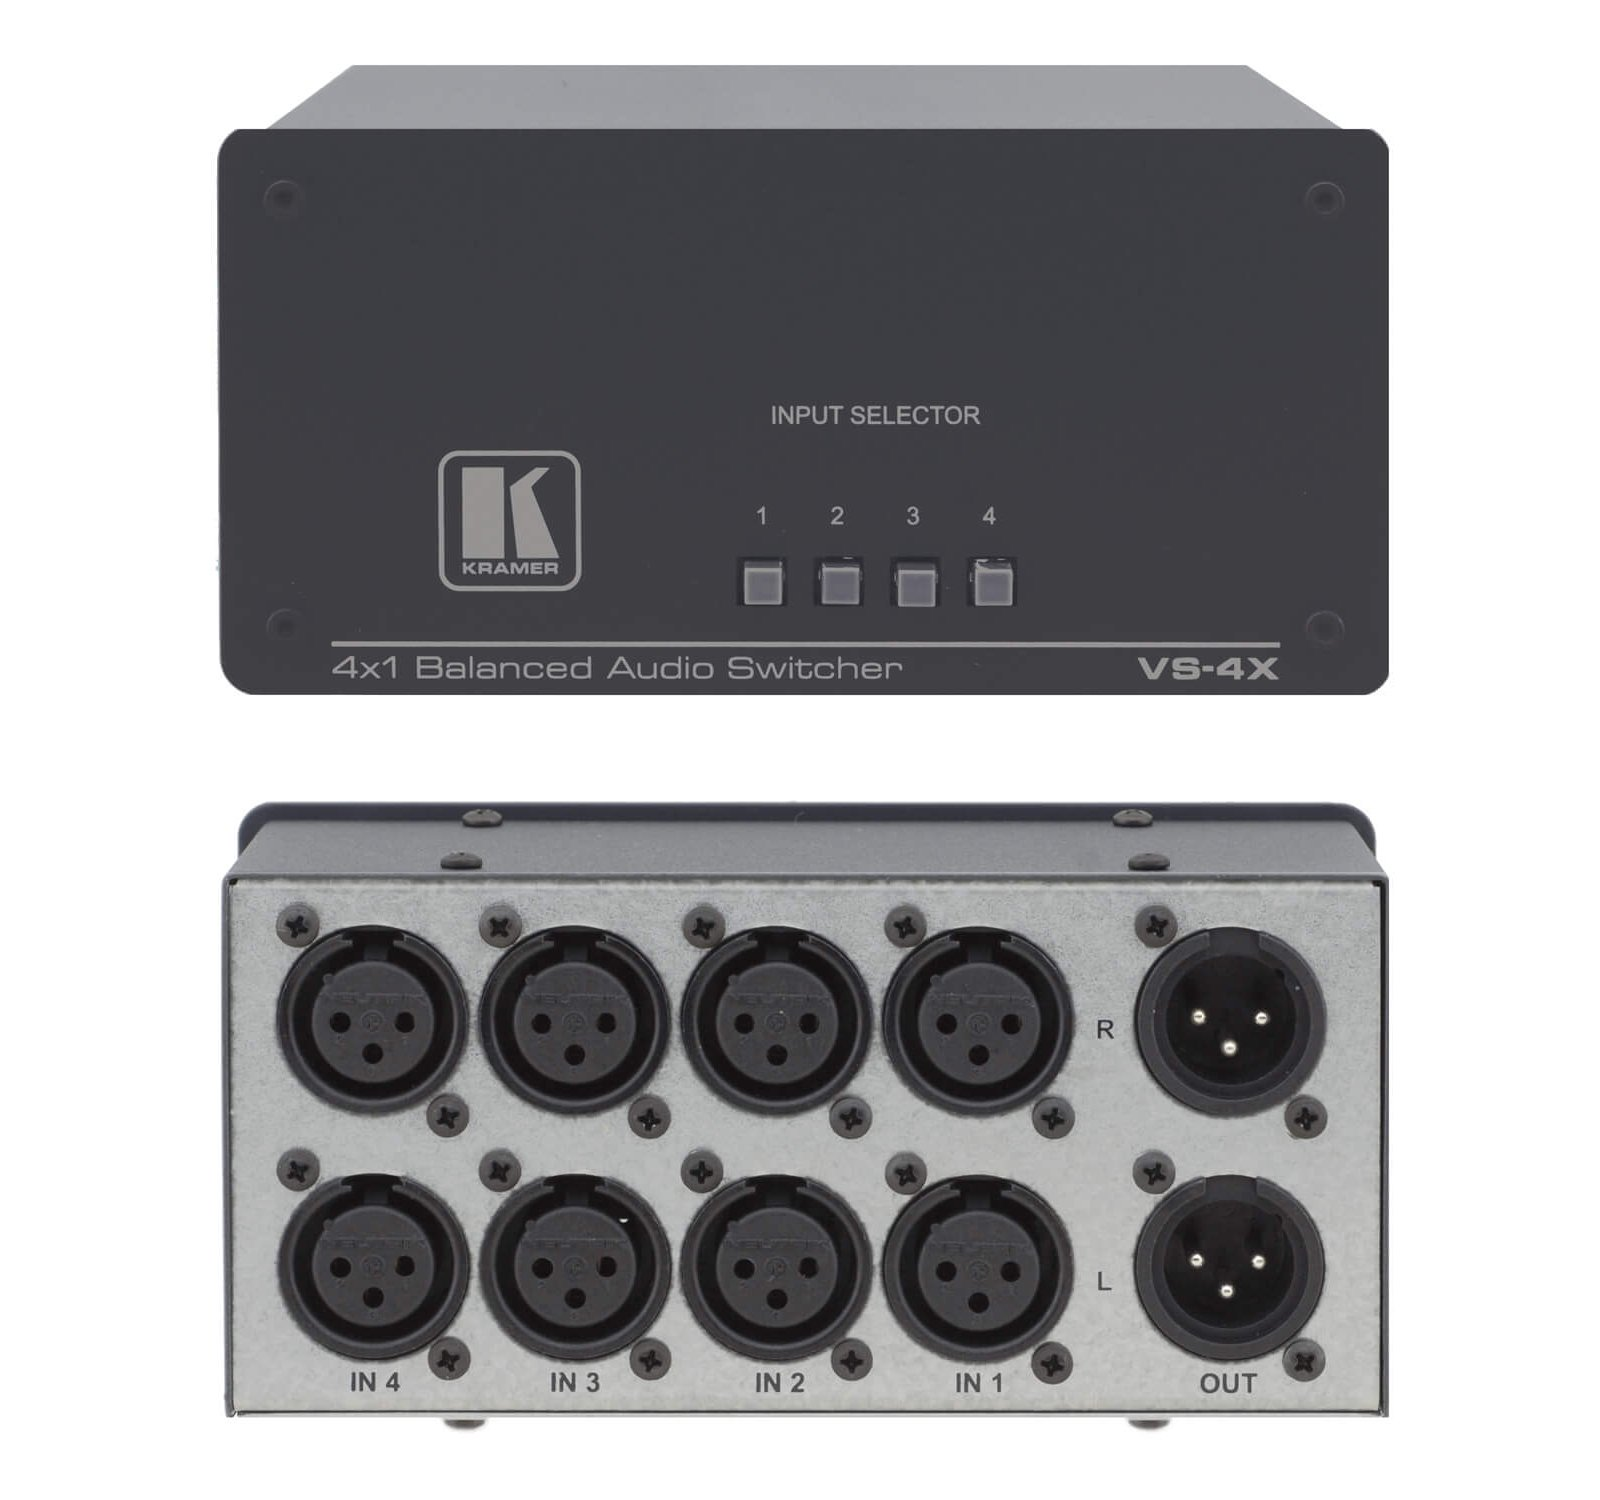 4x1 Balanced Audio Switcher